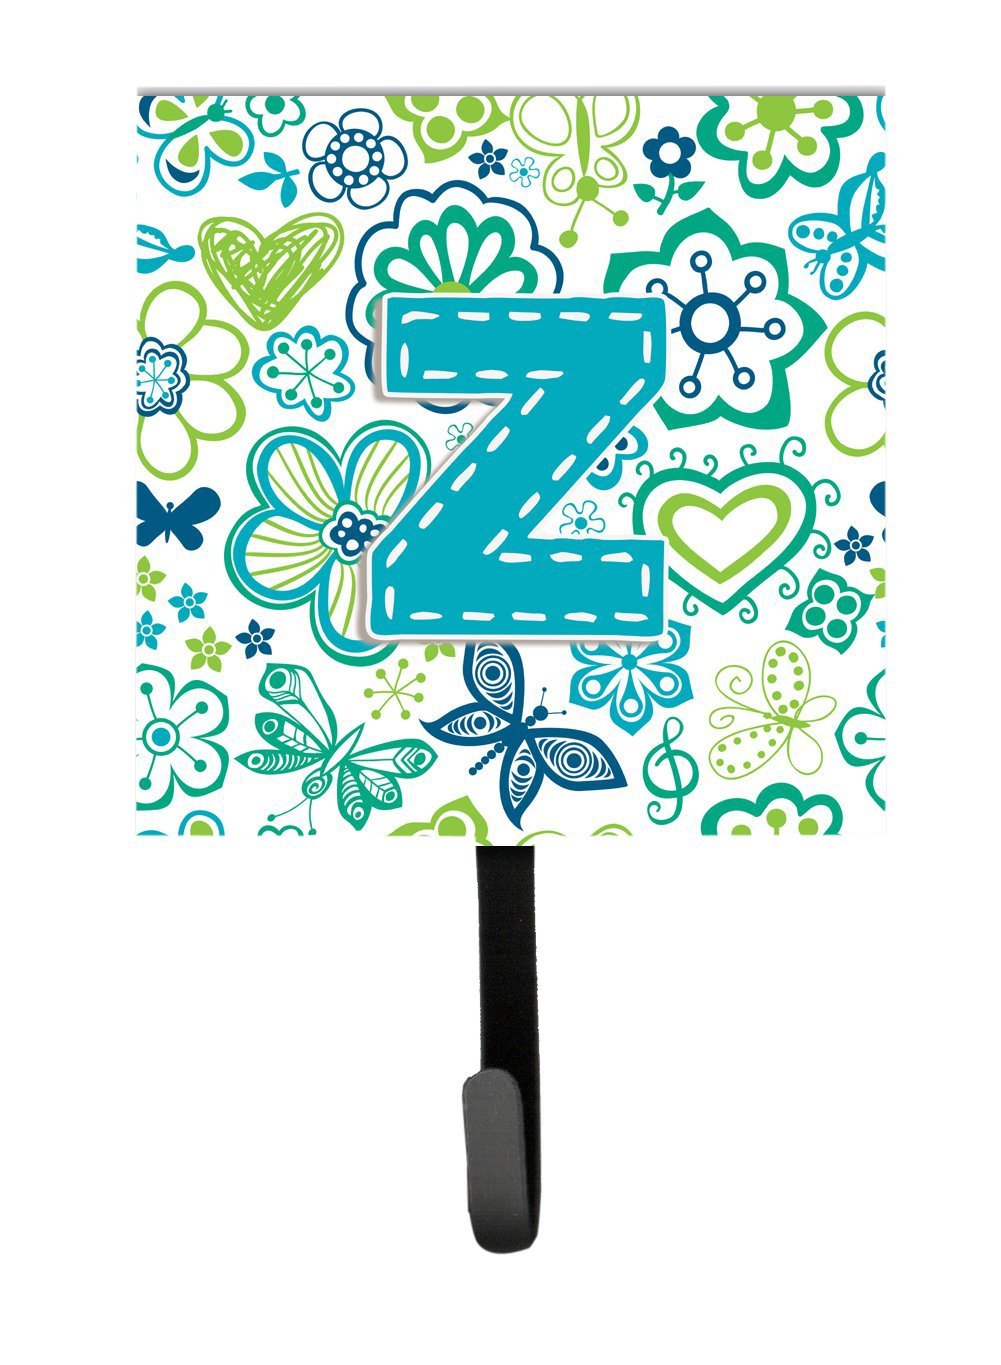 Carolines Treasures CJ2006-ZSH4 Letter Z Flowers and Butterflies Teal Blue Leash or Key Holder Small Multicolor